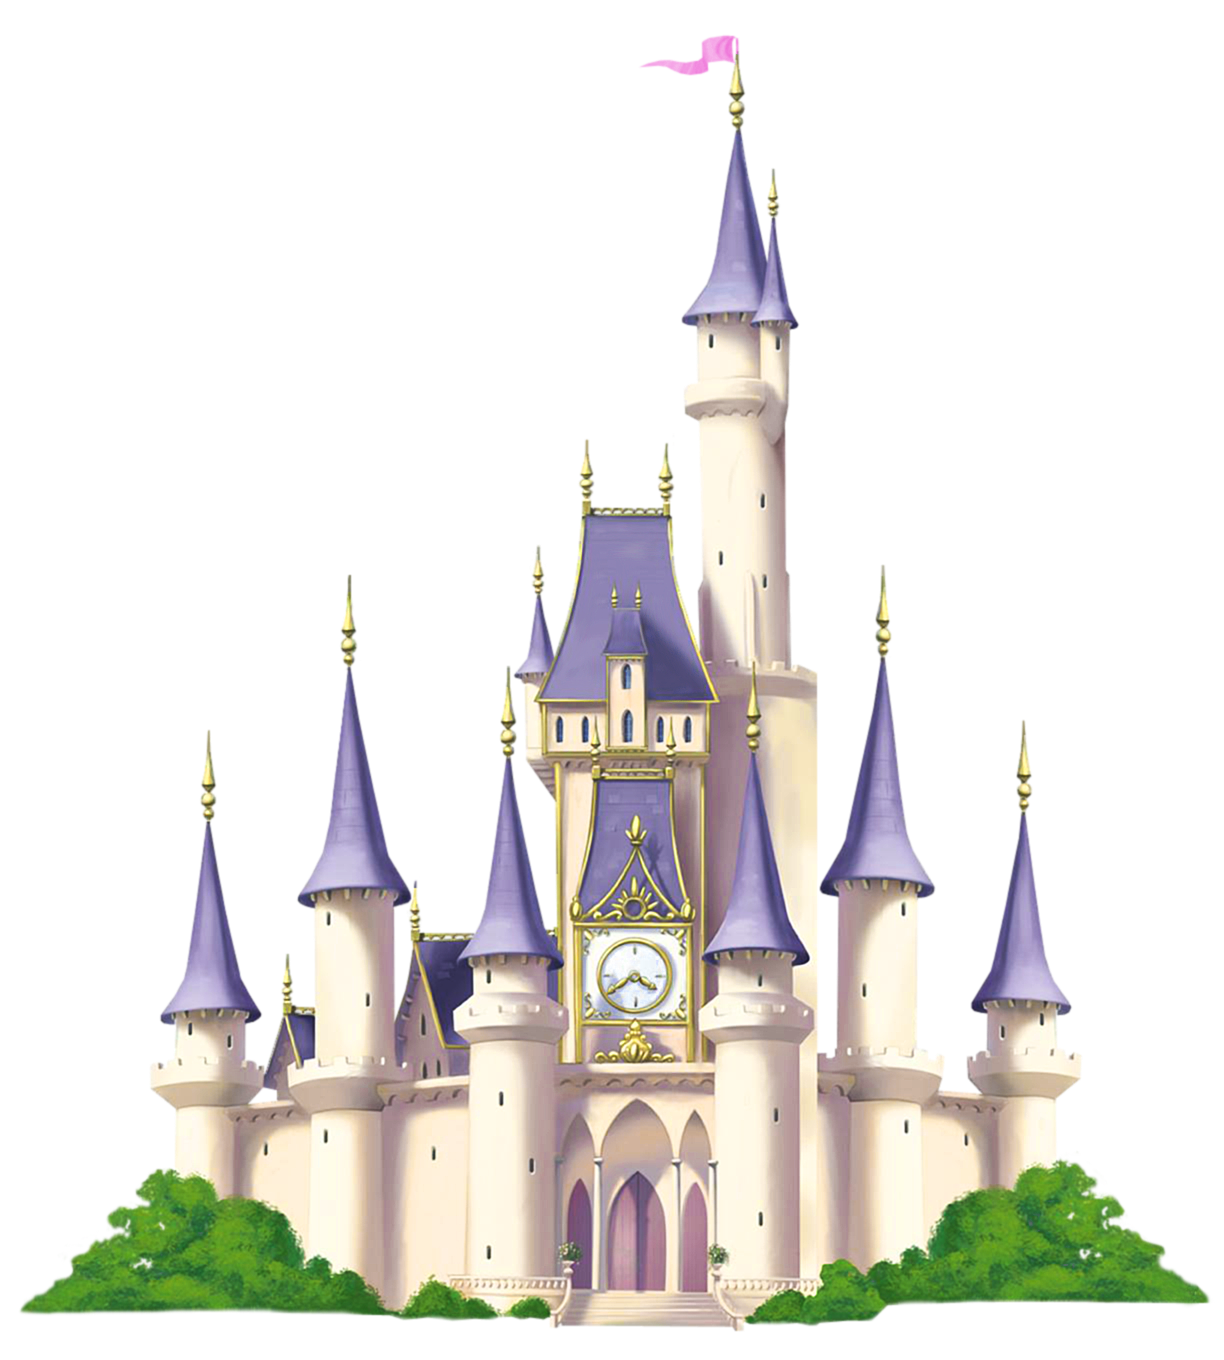 Cinderella castle disney castle disney cinderella clipart hdclipartall